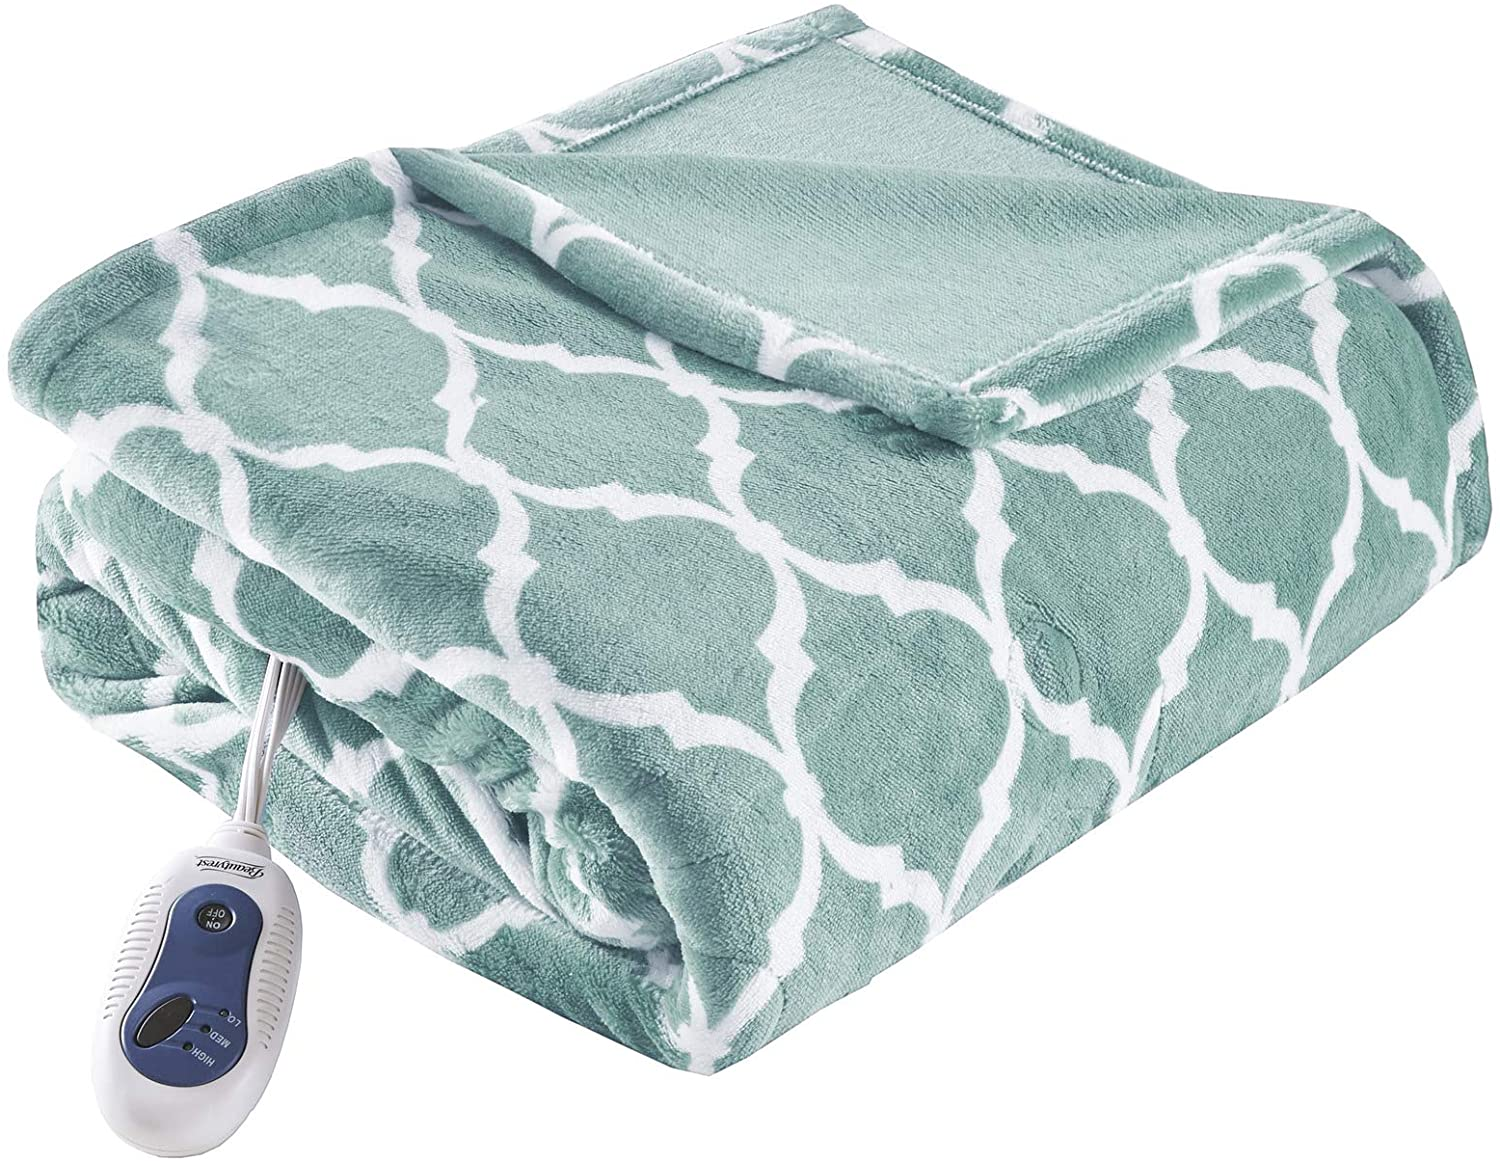 Max 70% OFF Beautyrest Plush Electric Throw Blanket Special sale item Secure Comfort Te –